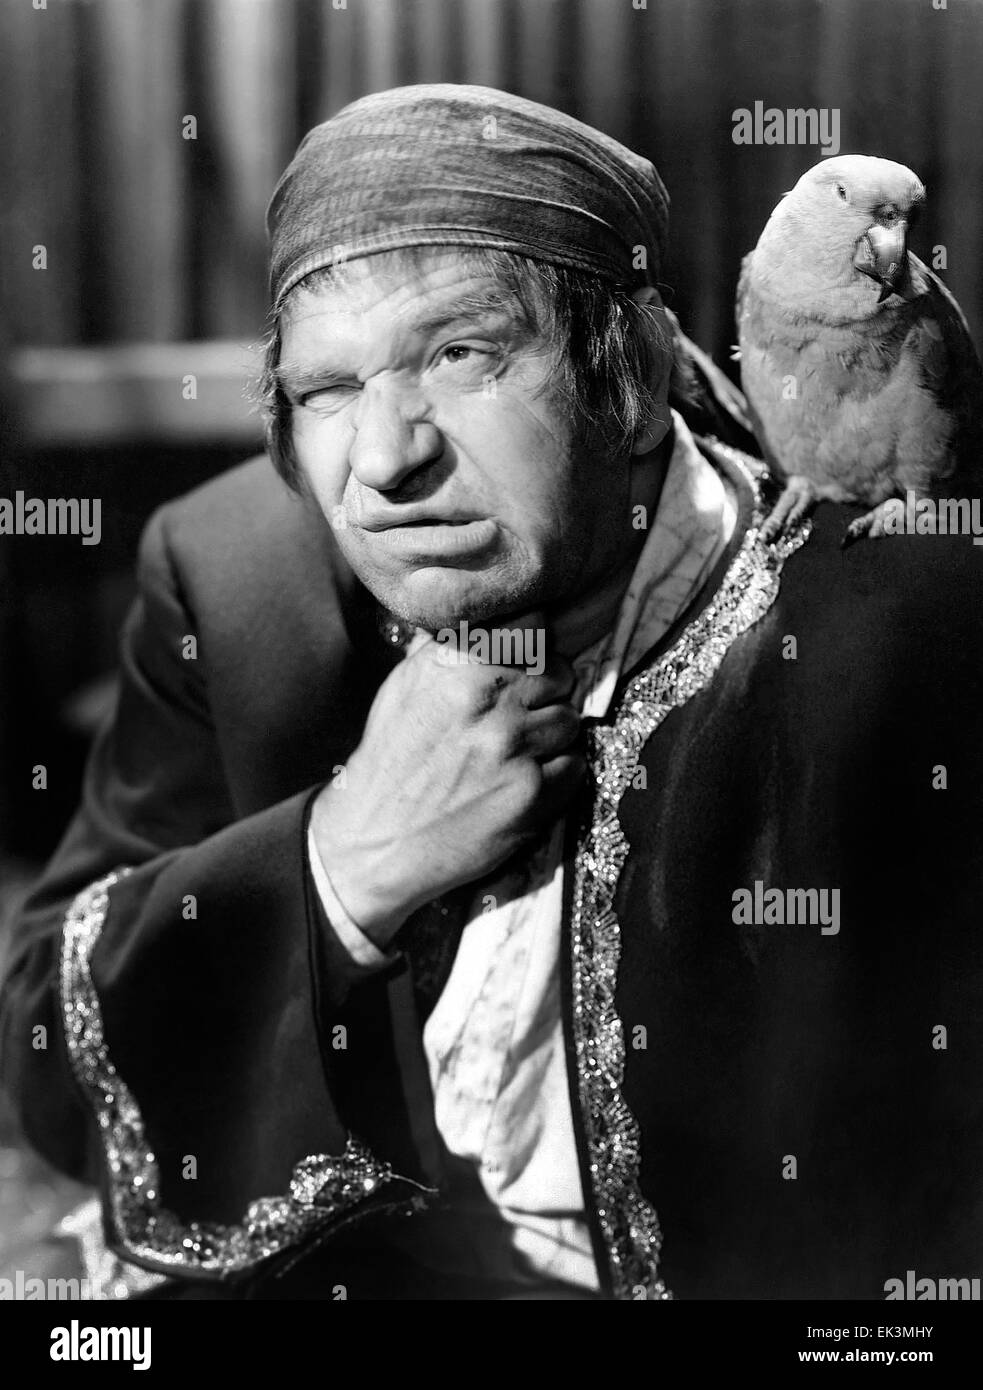 Wallace Beery, on-set of the Film 'Treasure Island', 1934 - Stock Image